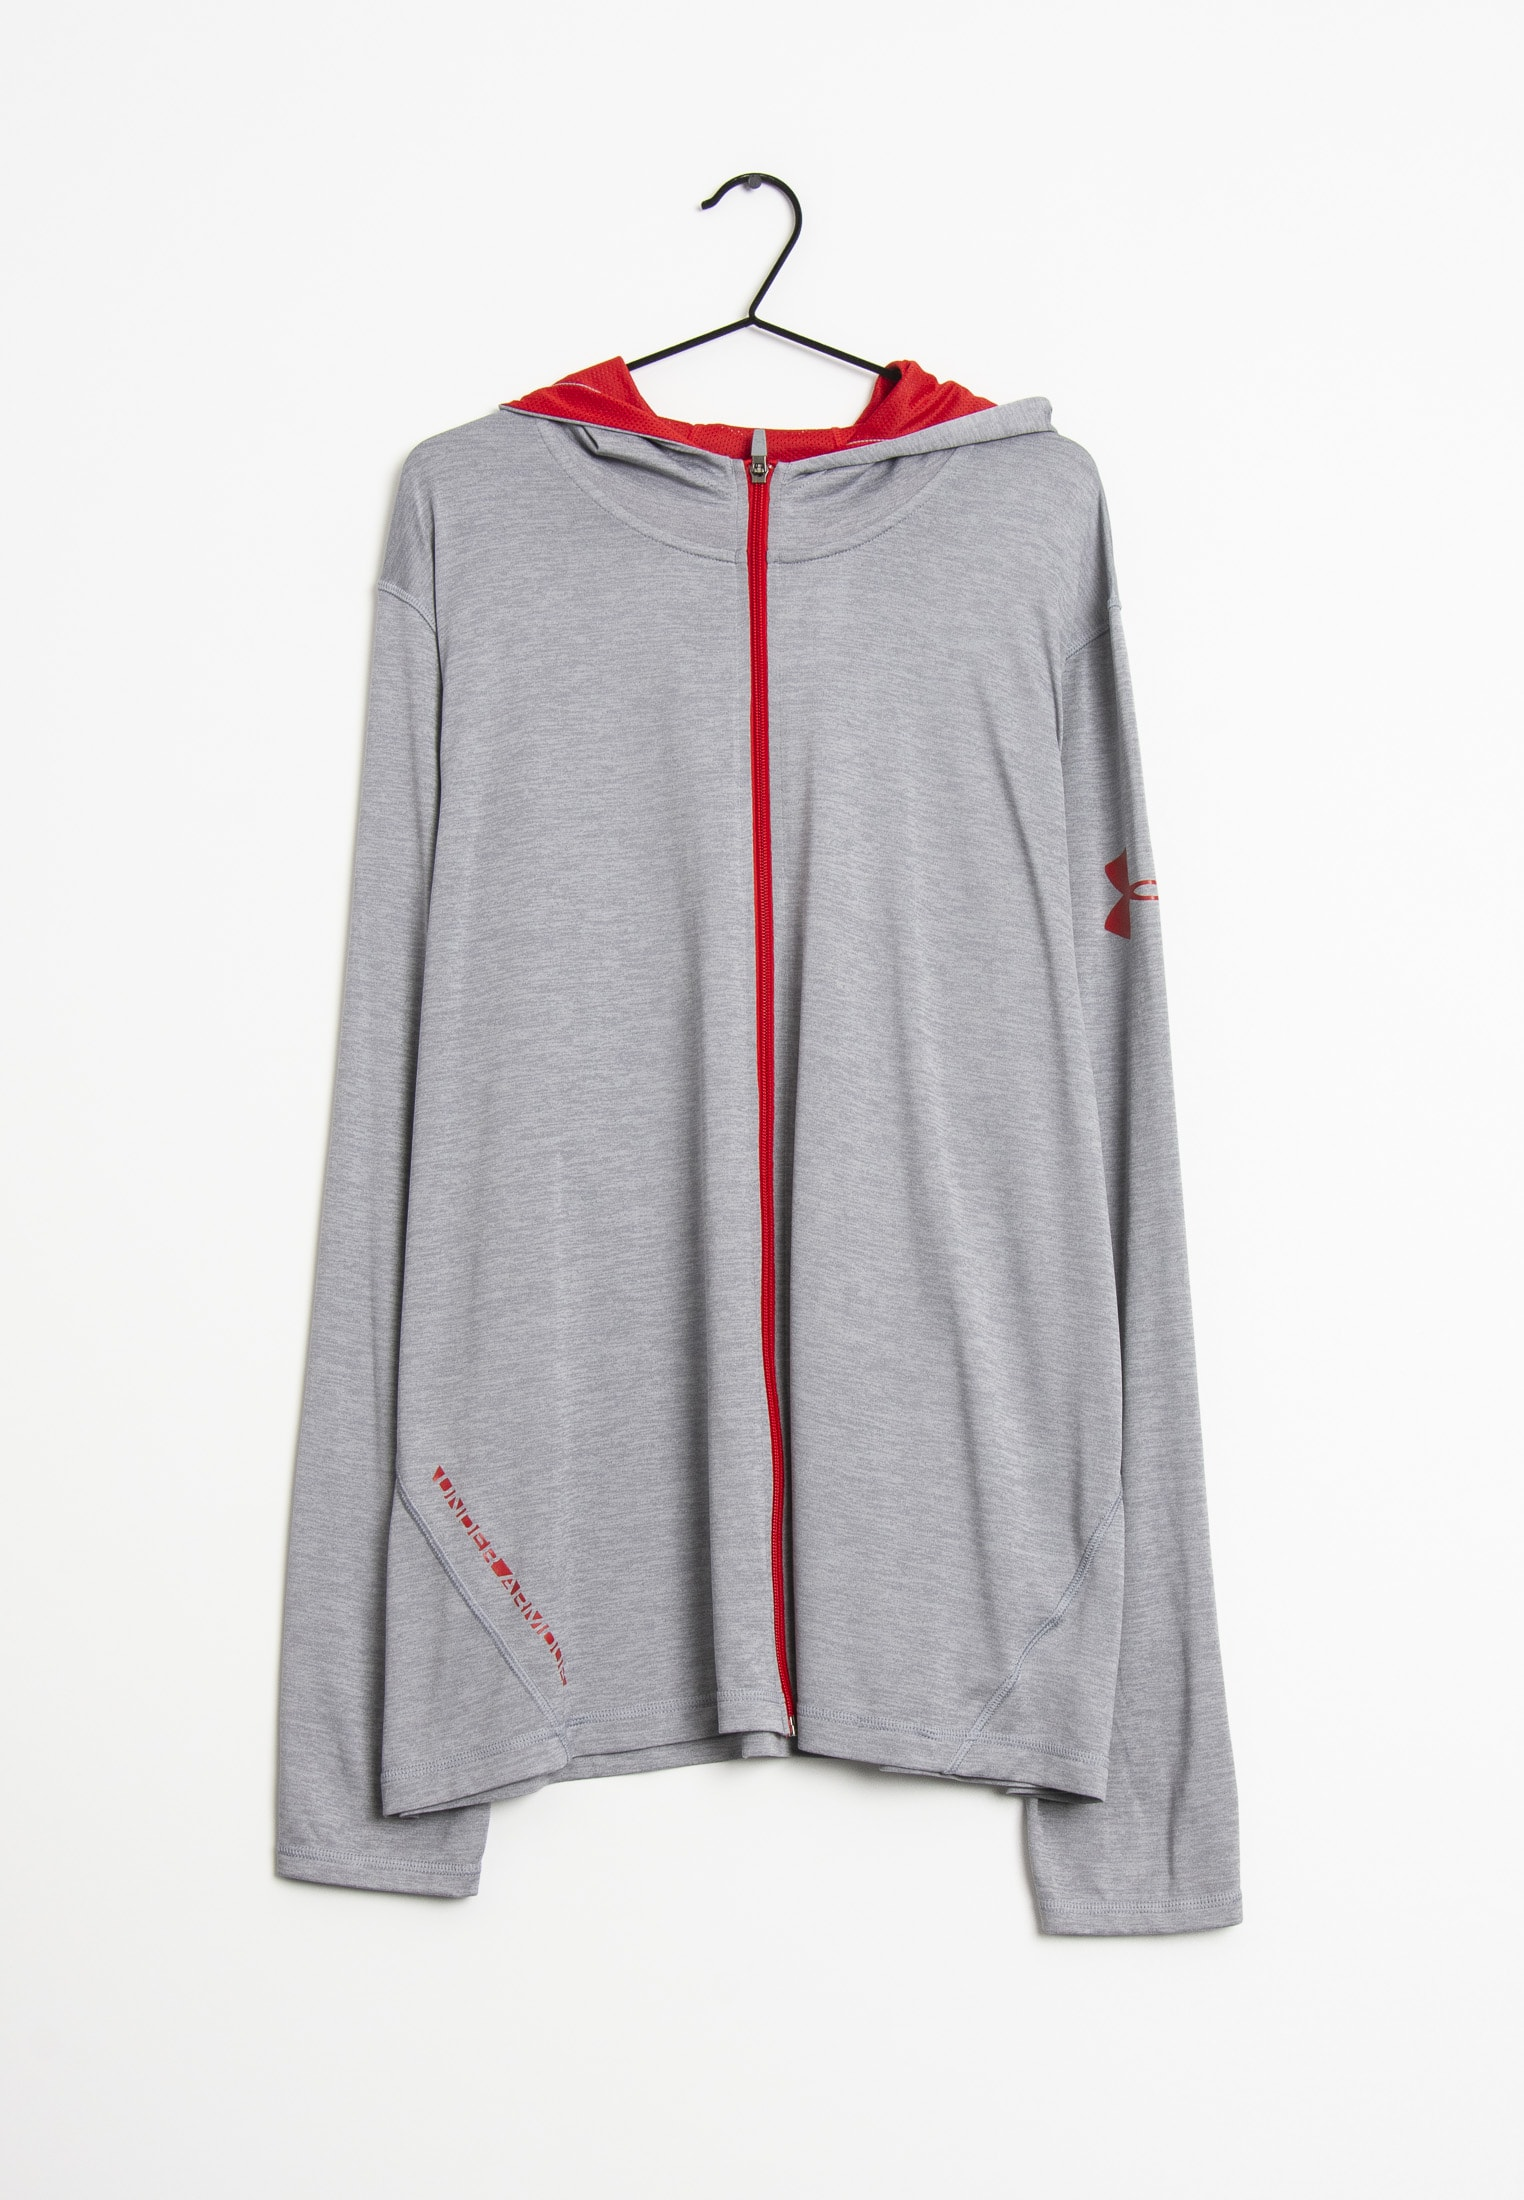 Under Armour Sweat / Fleece Grau Gr.XXL